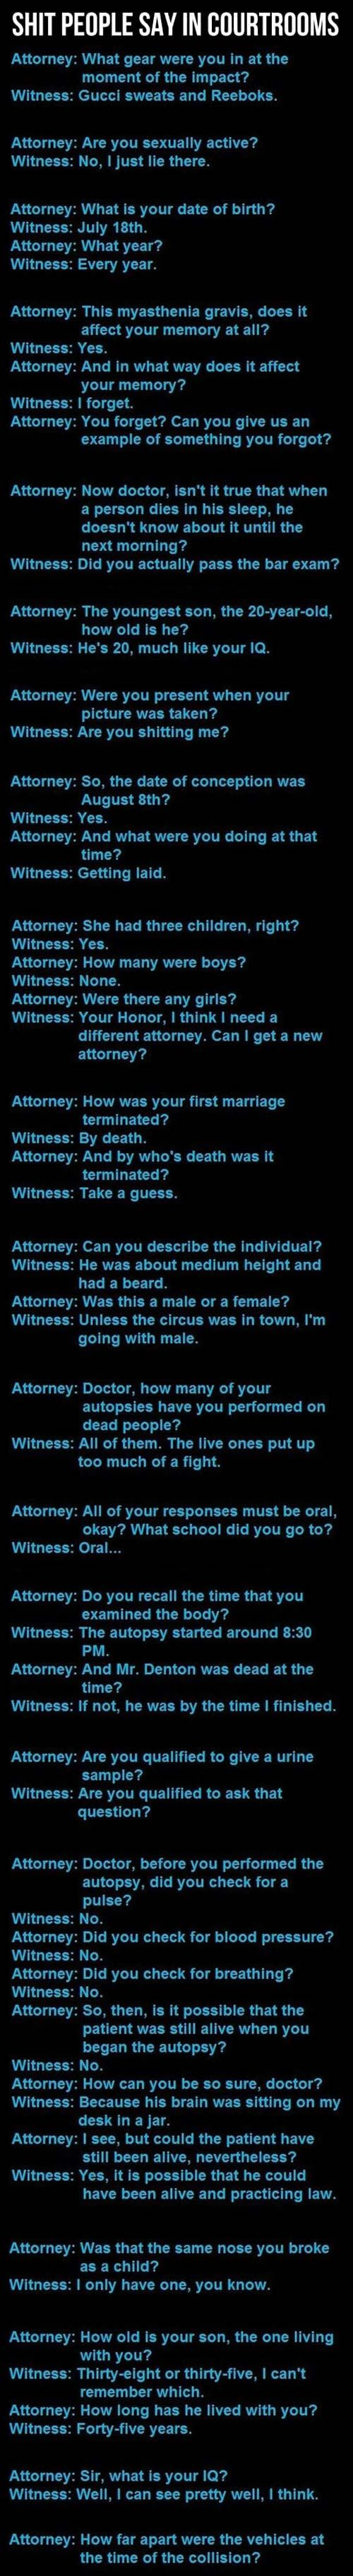 Dumb things people say in courtrooms. Oh gosh hahahahaha